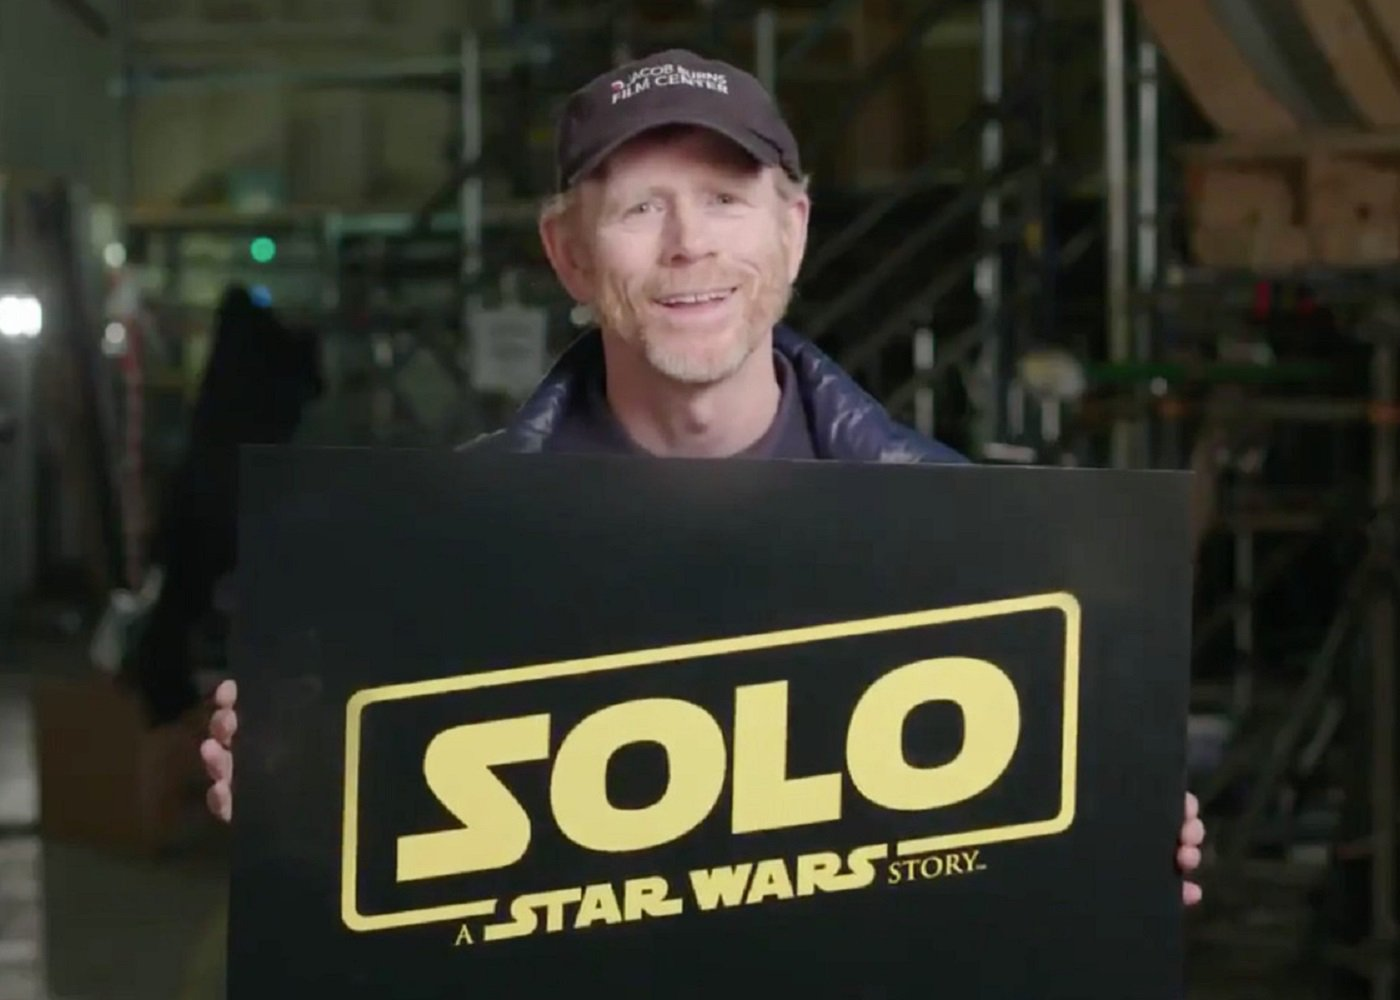 Han Solo Film Wraps Production, Has Title